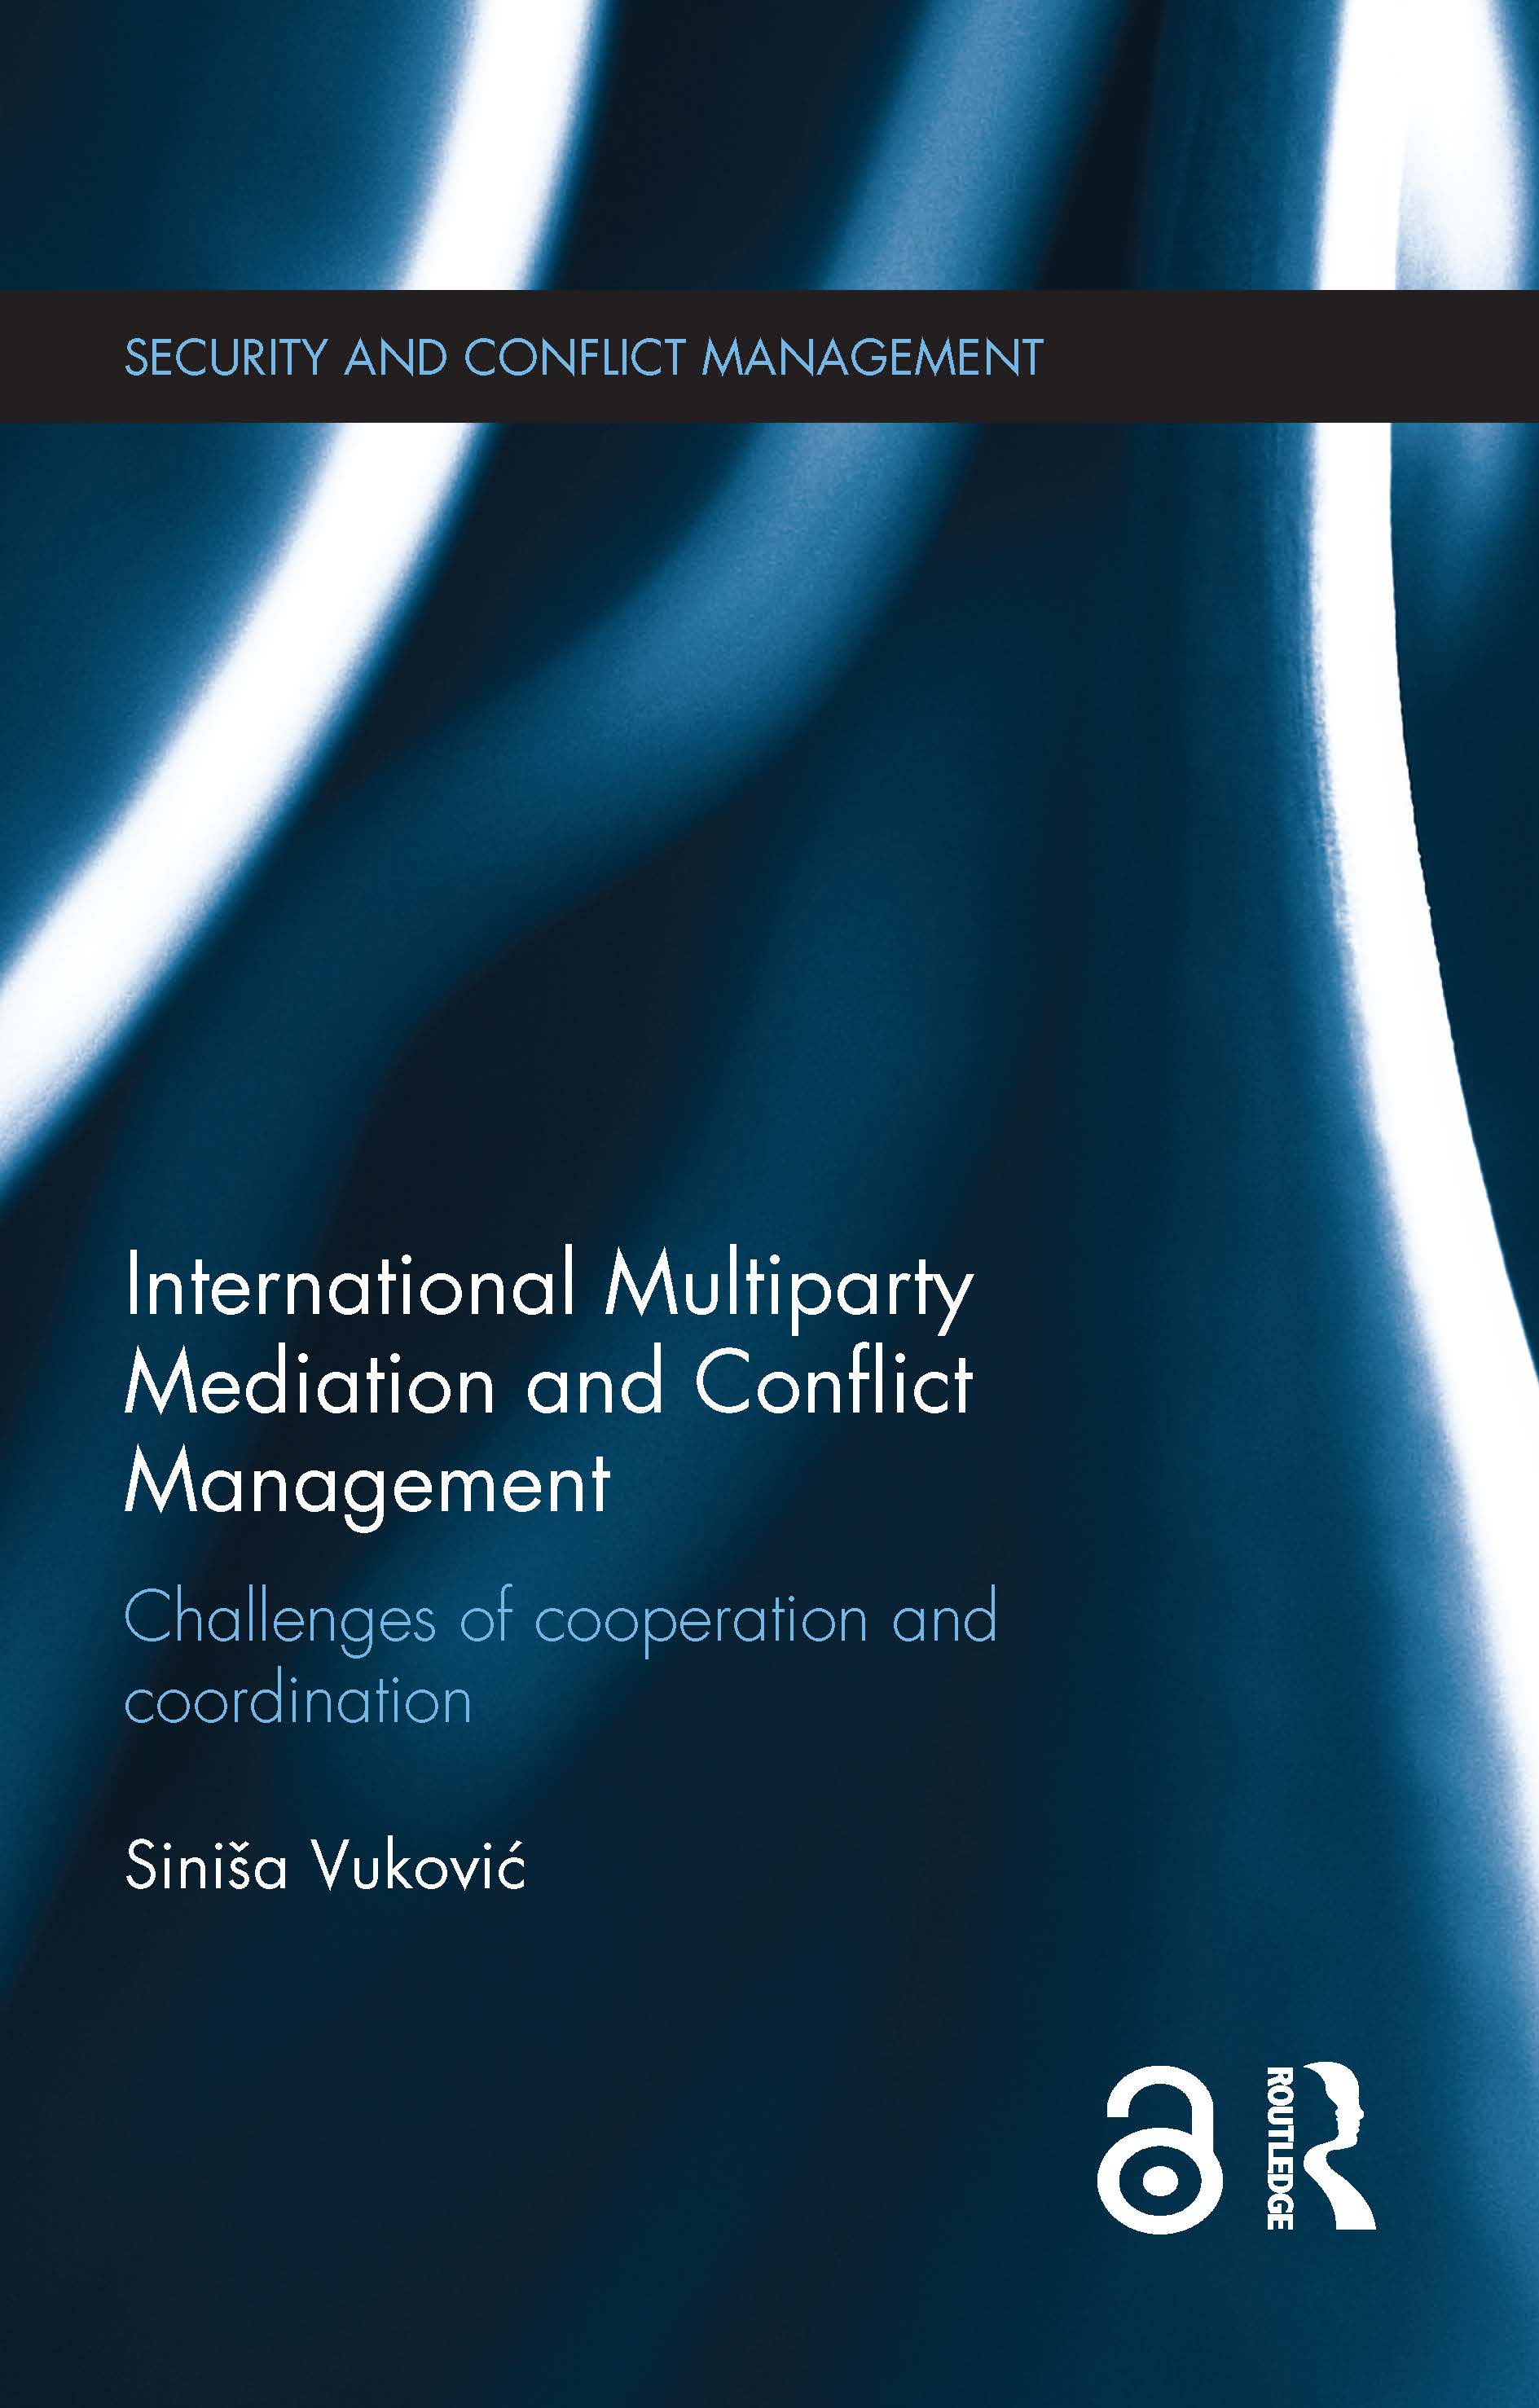 International Multiparty Mediation and Conflict Management: Challenges of Cooperation and Coordination book cover